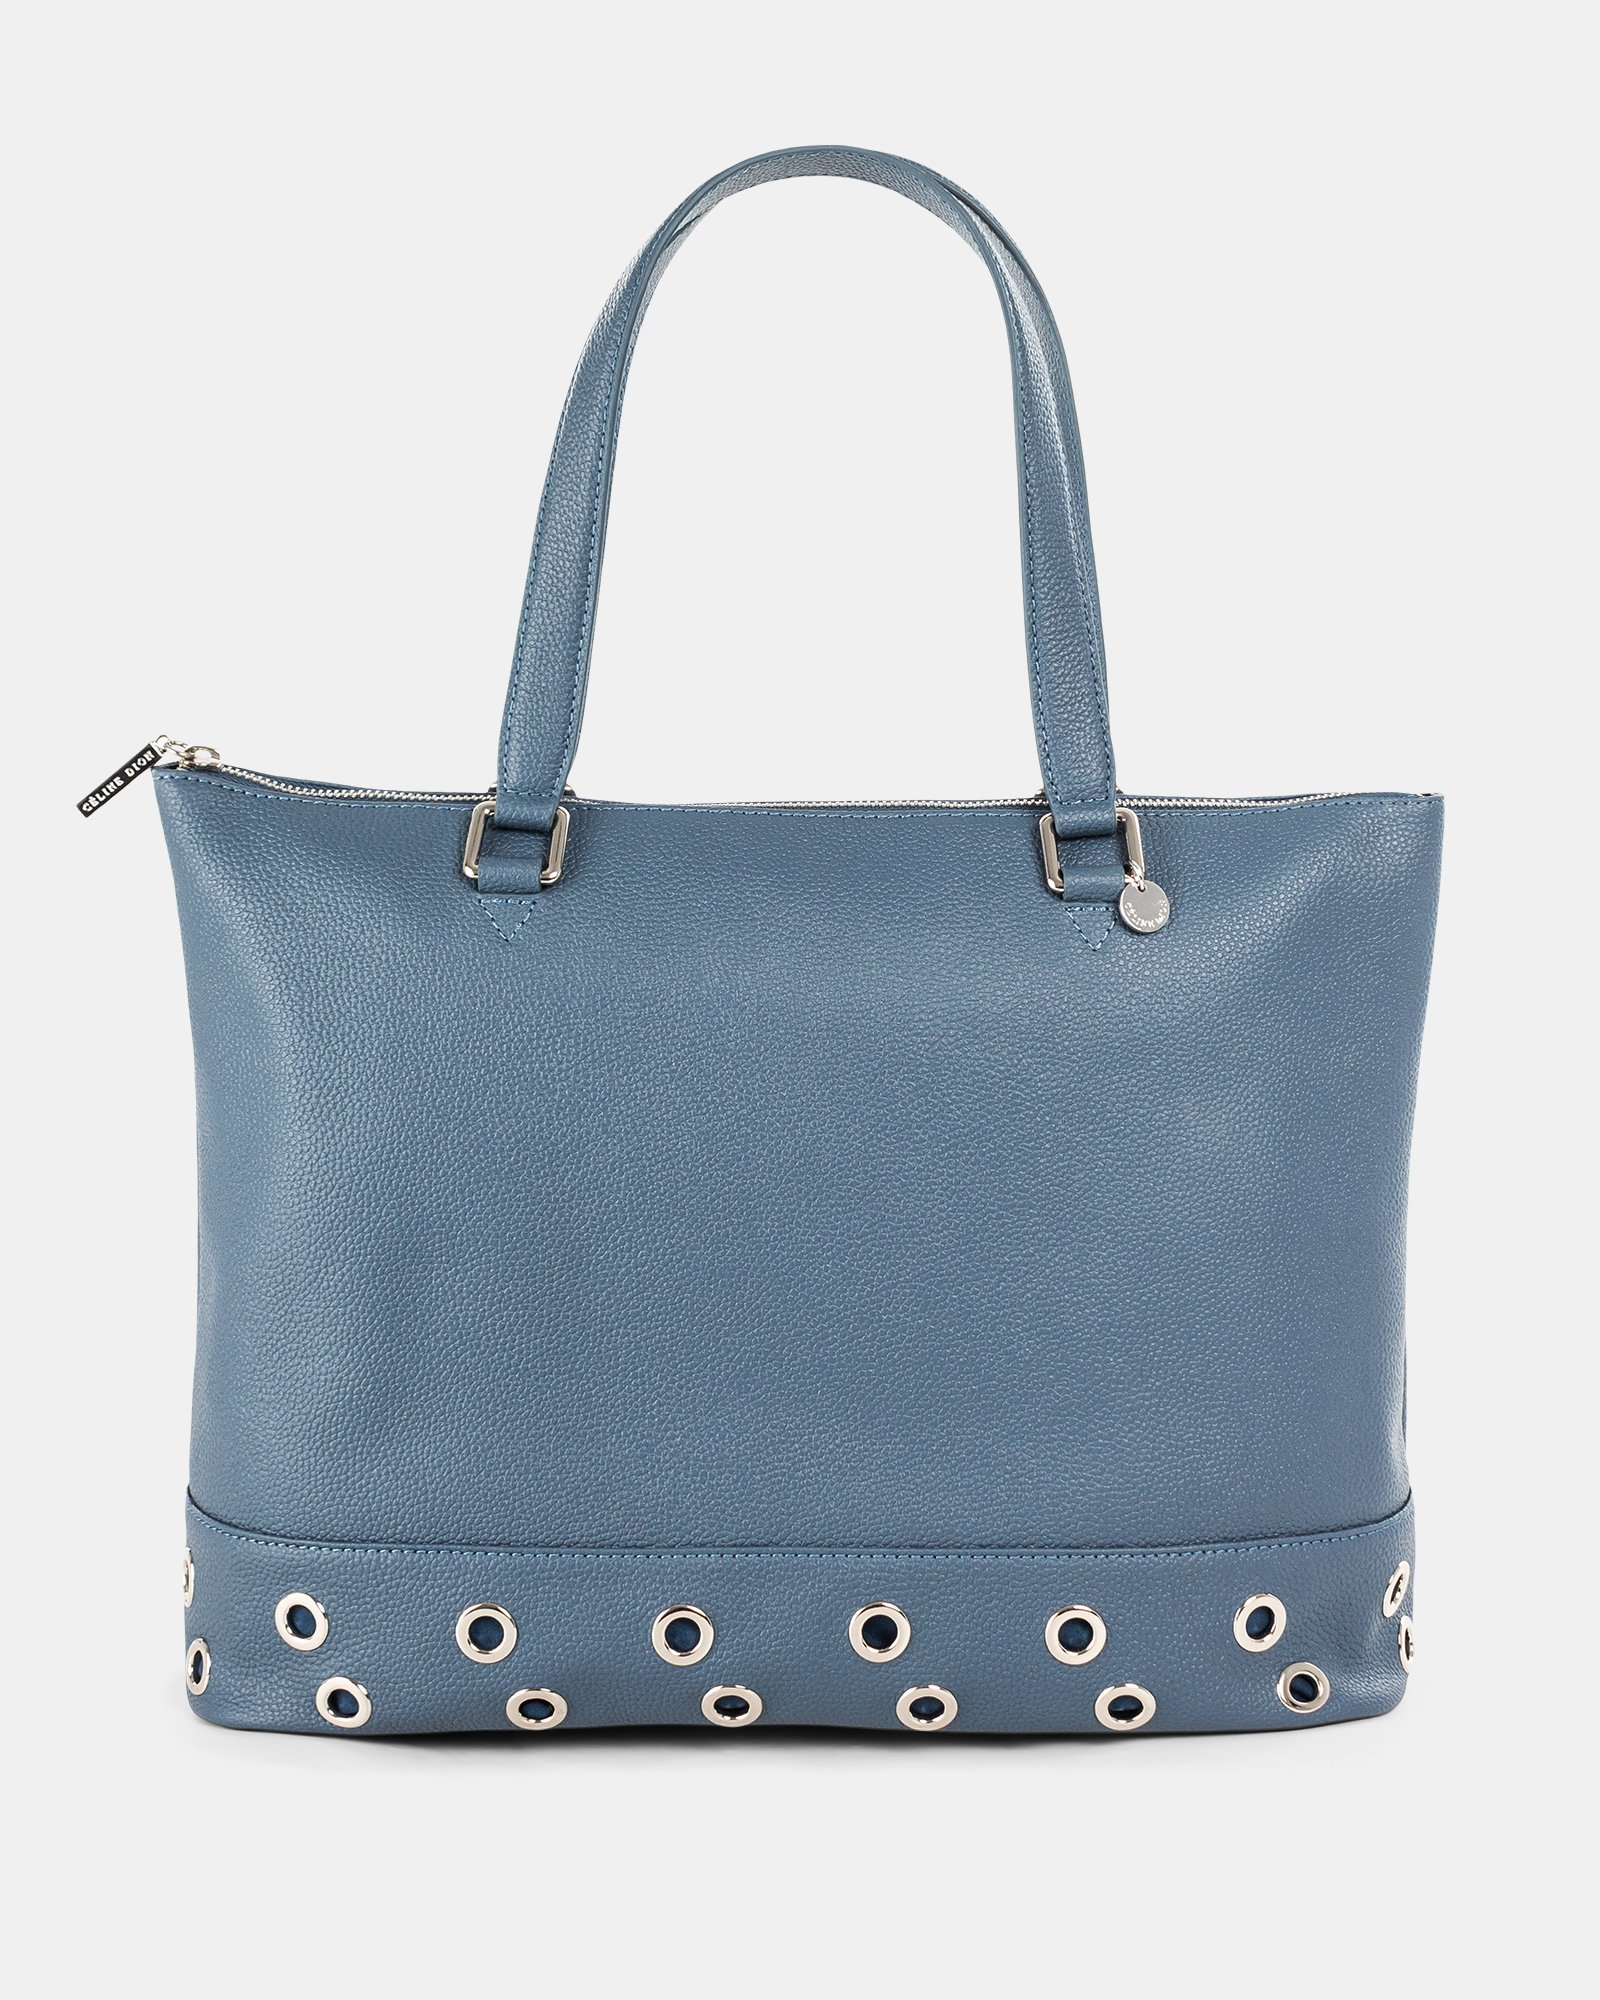 FALSETTO - LEATHER TOTE BAG WITH RFID PROTECTION - denim - Céline Dion - Zoom